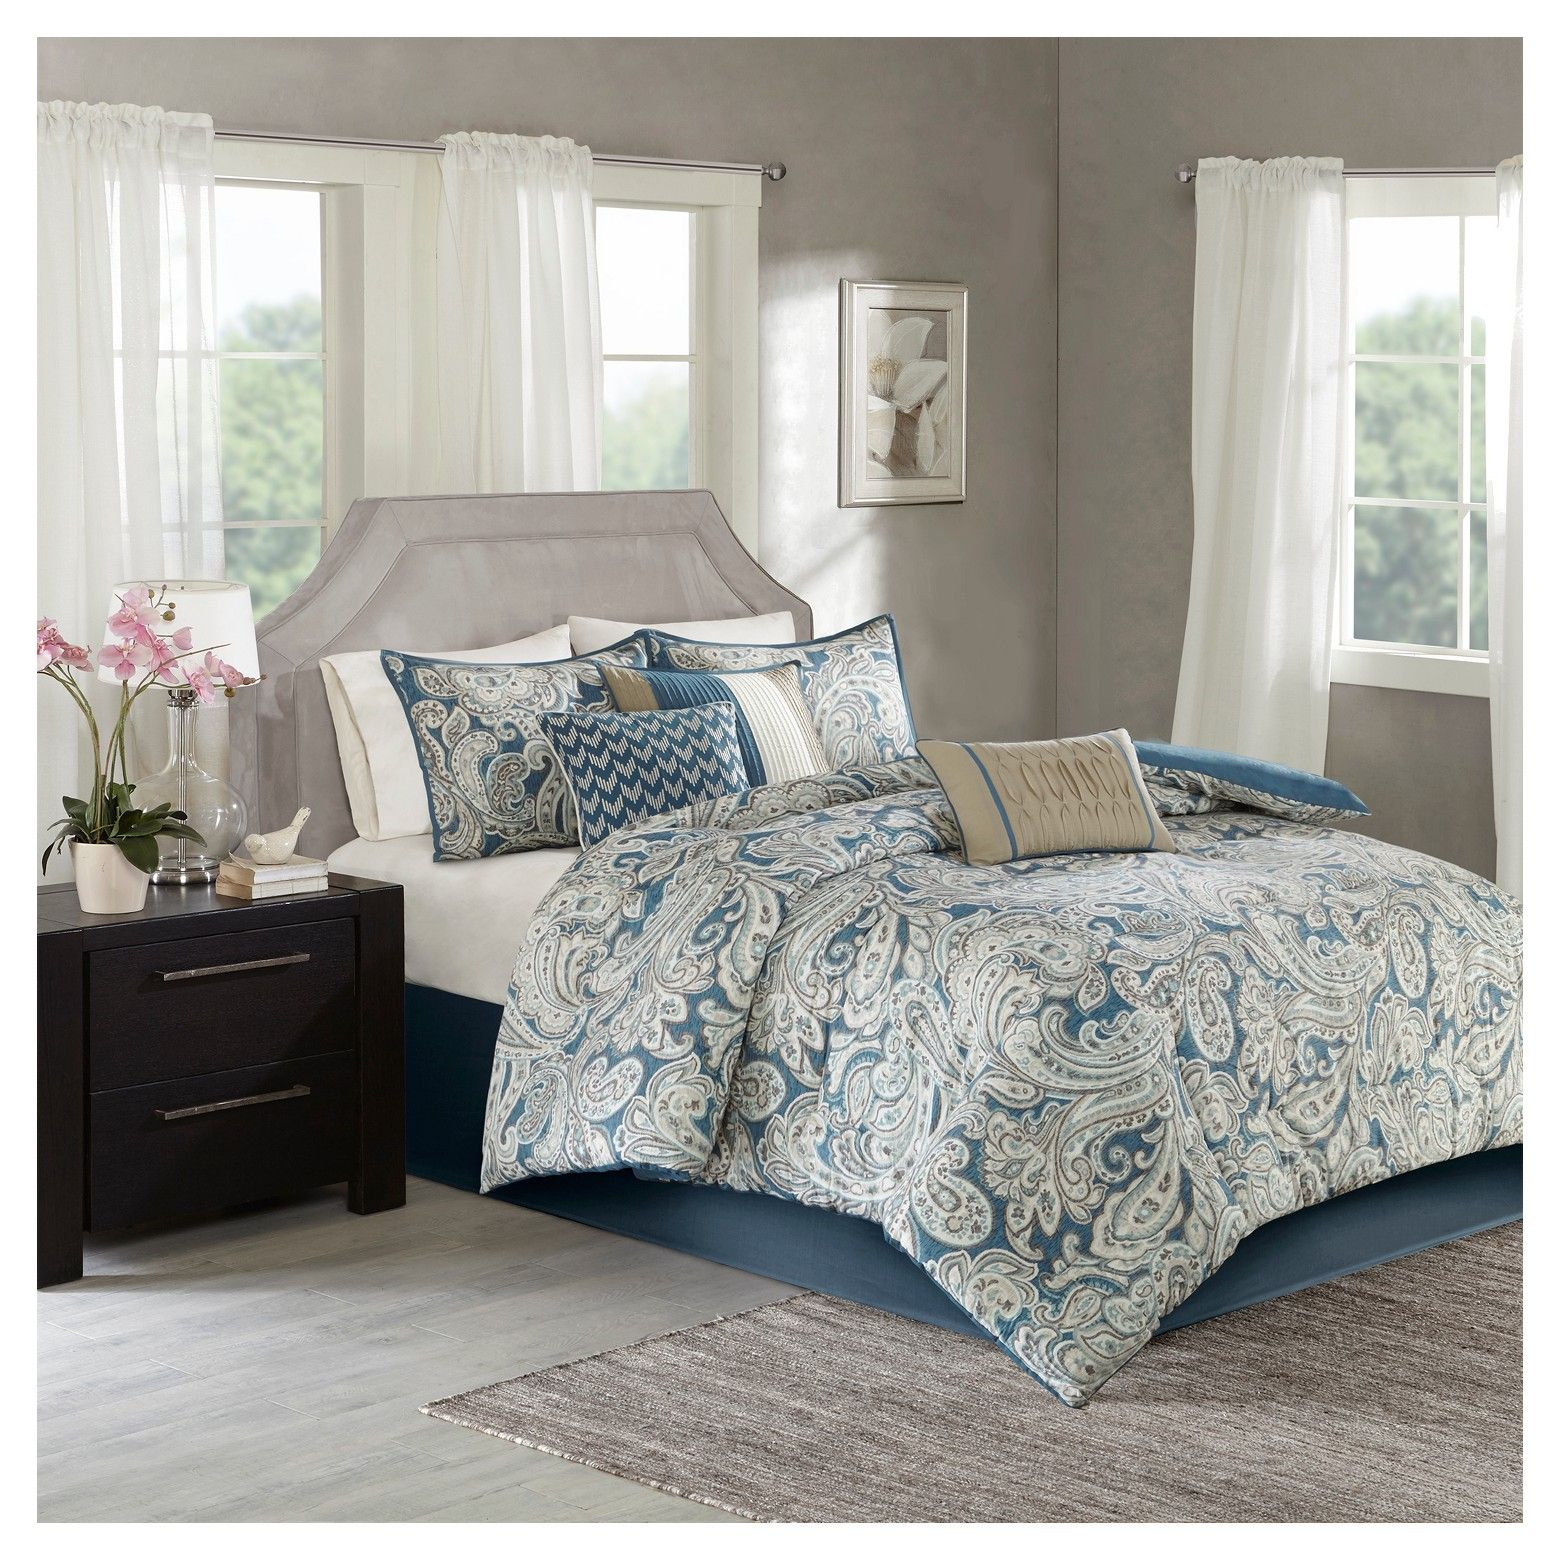 The Celena Comforter Set mixes a classic design with a contemporary color scheme to give you a charming bedding collection. The comforter features a classic paisley pattern that is perfectly contrasted against a rich, vibrant background. Three decorative pillows follow the same top of bed color scheme to pull together the entire collection. Two shams and one bed skirt are included with the comforter and three decorative pillows to complete this set.